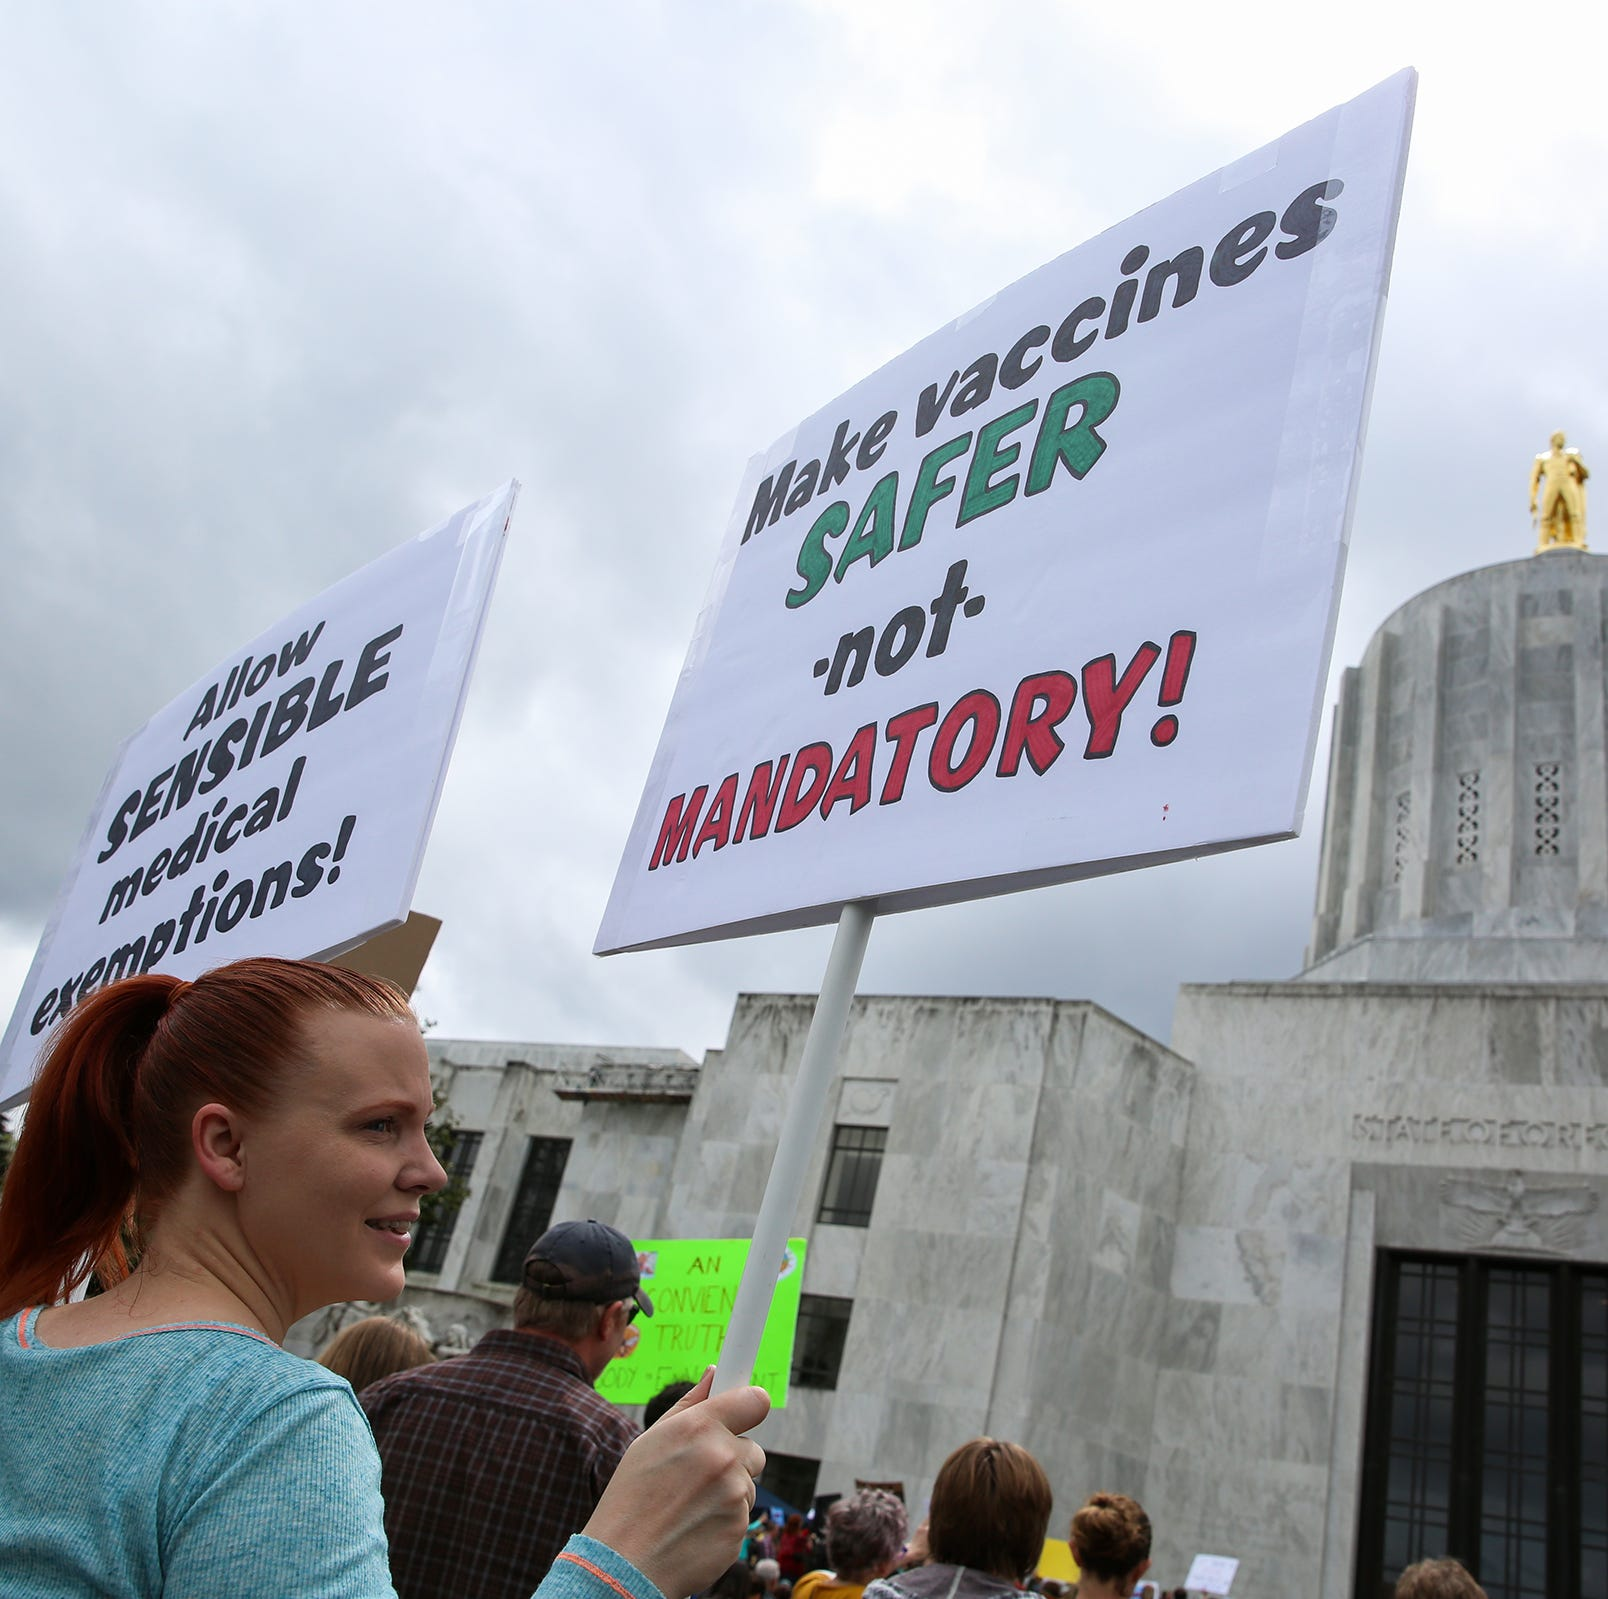 Vaccination exemption bill clears committee, heads to Oregon House vote